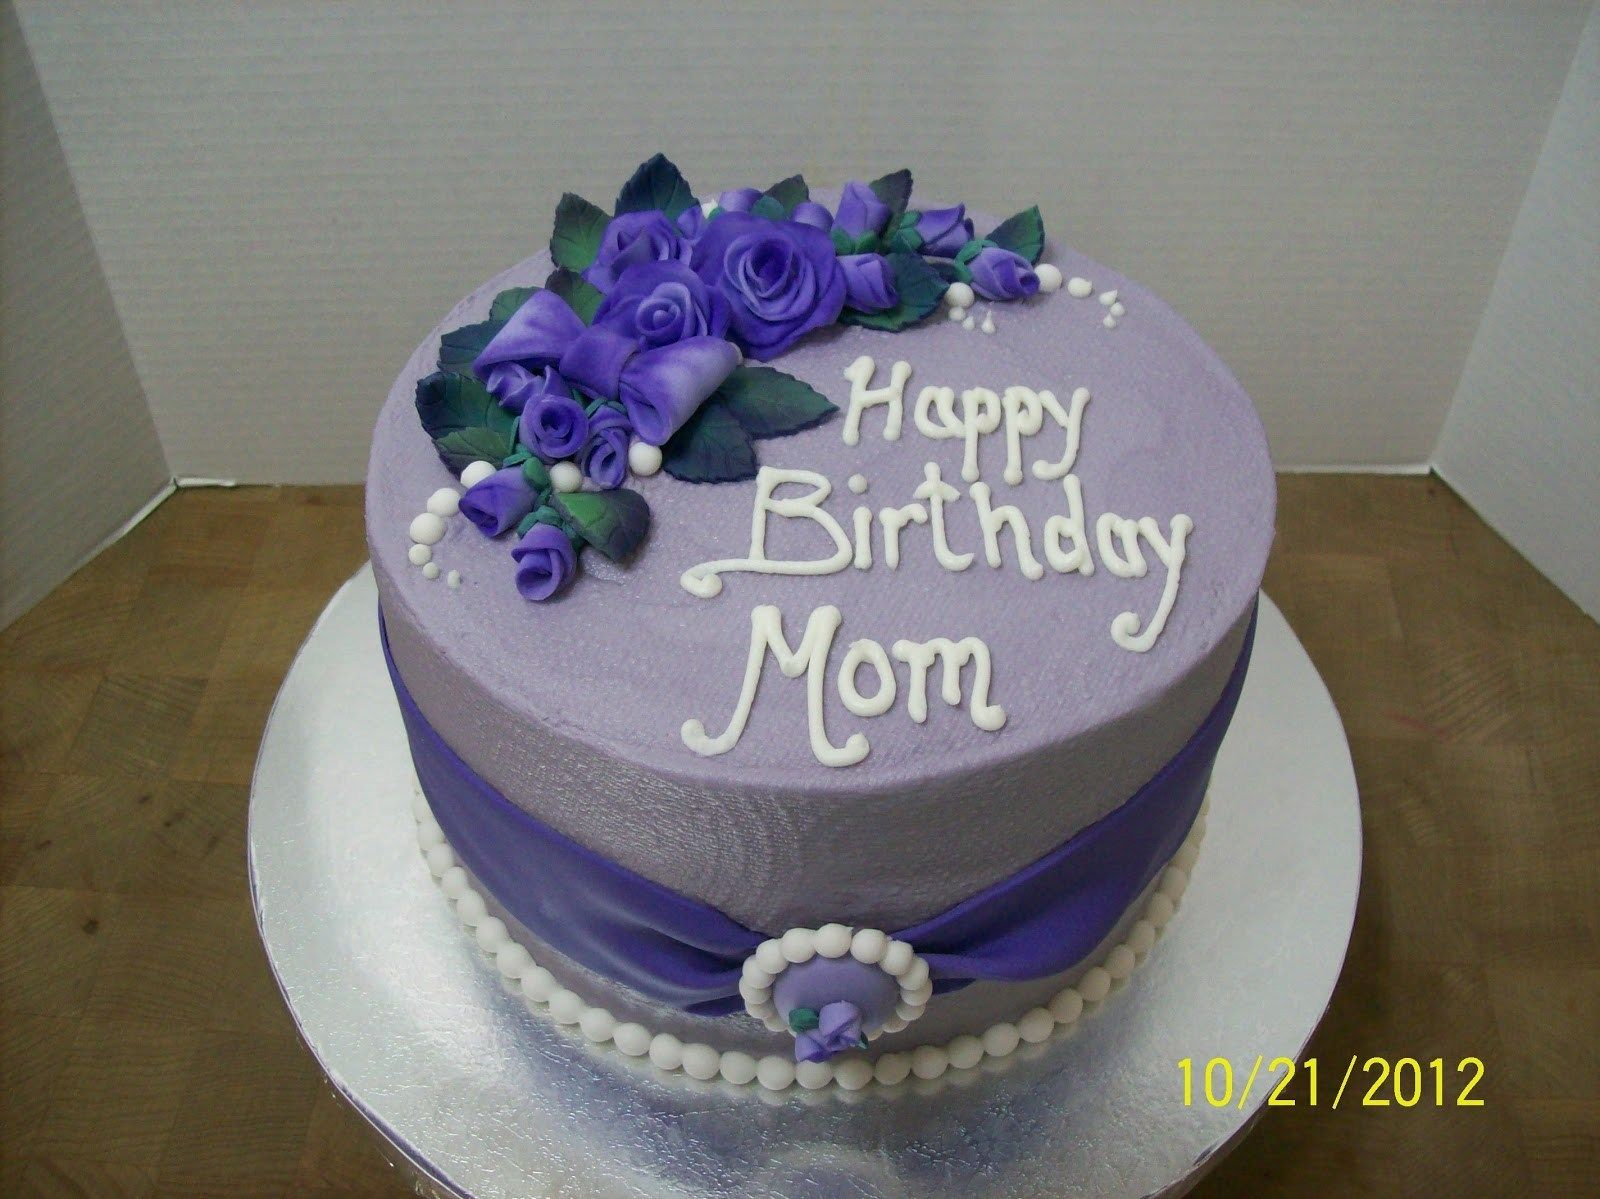 Cute birthday cakes for mom pictures of cute cake ideas